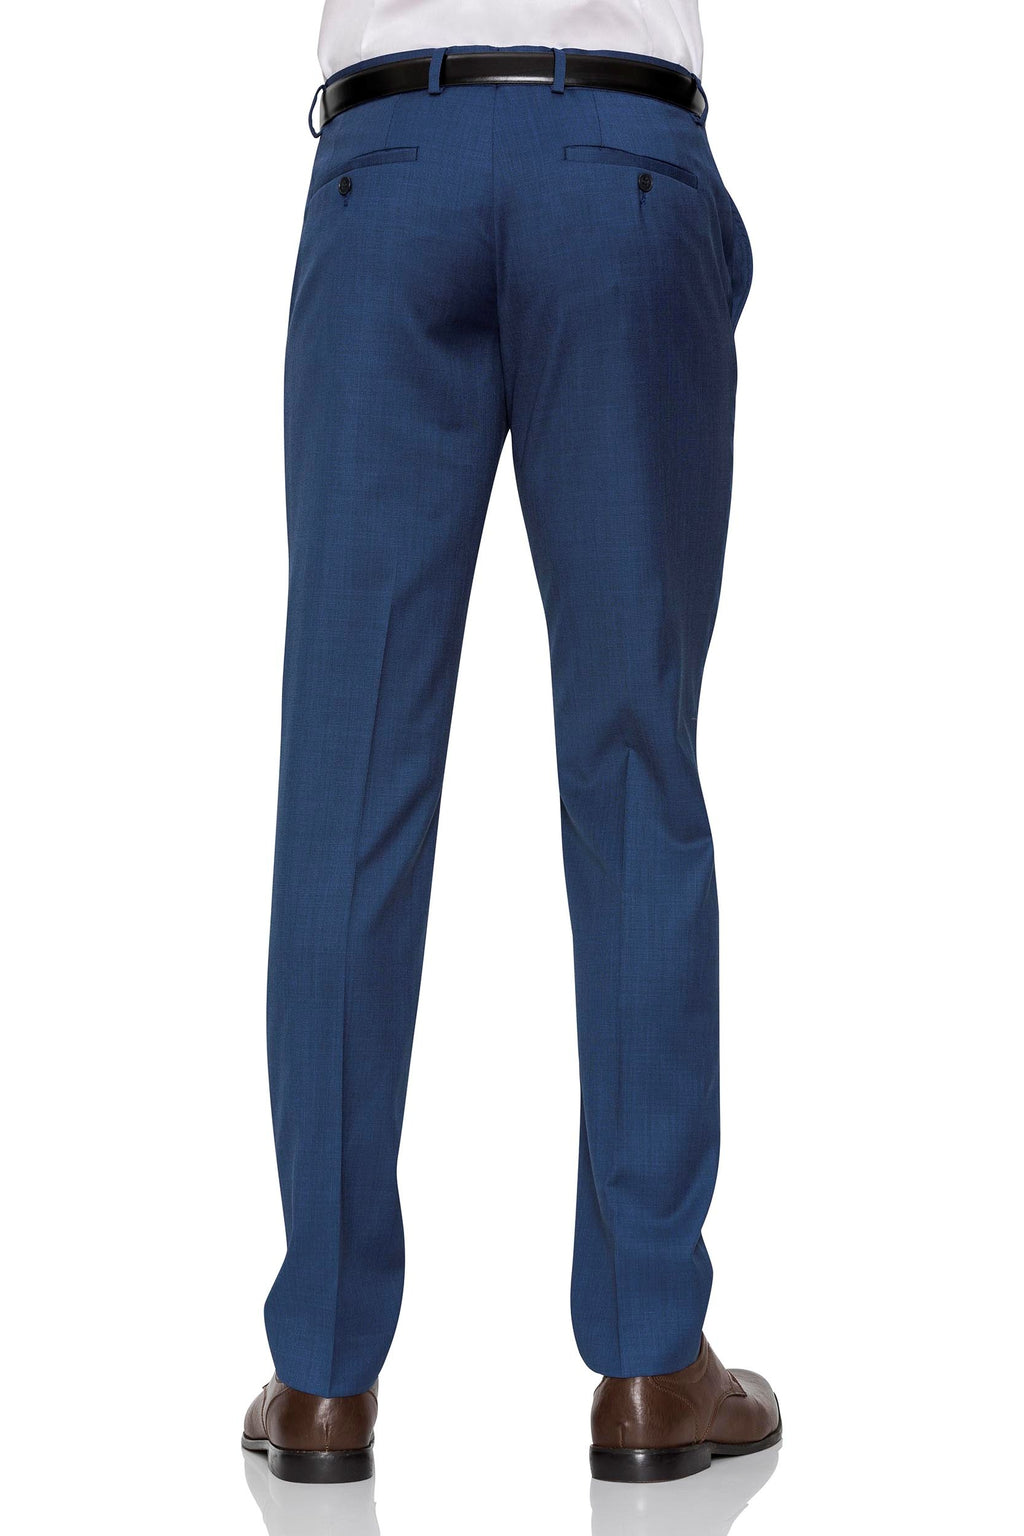 Blue Gibson Trousers - Ignition For Men